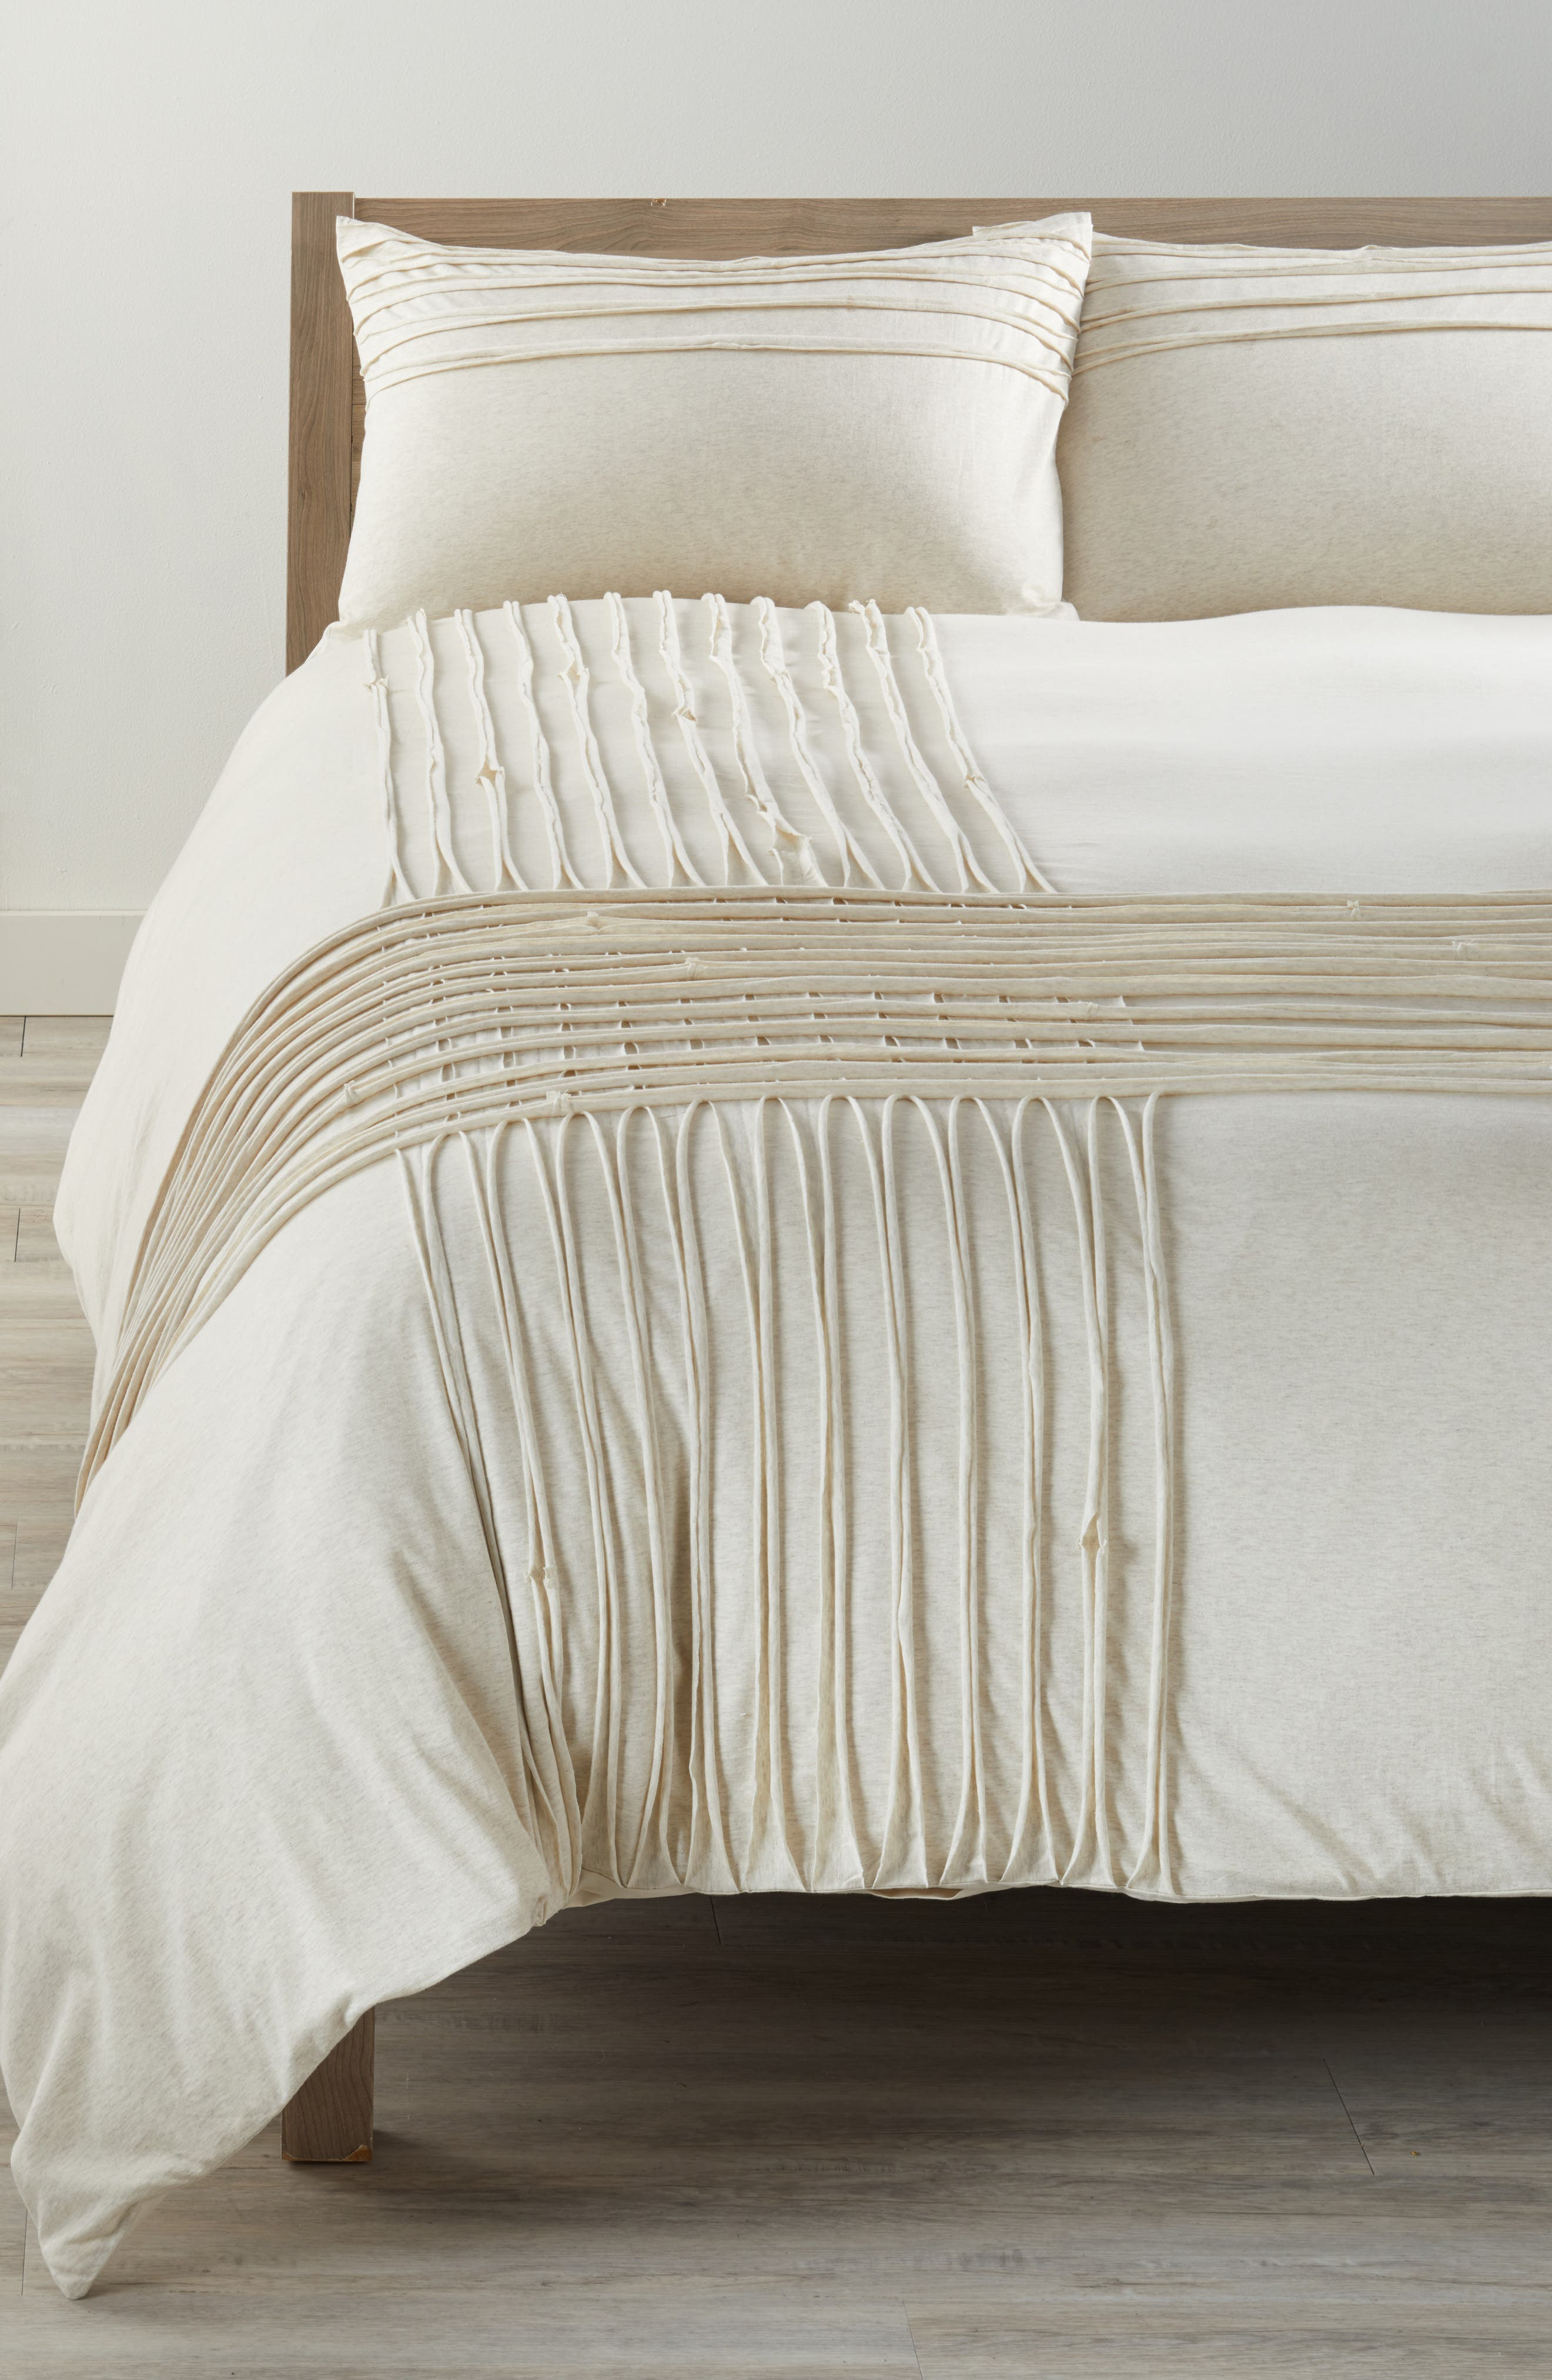 Nordstrom at Home Jersey Grid Duvet Cover